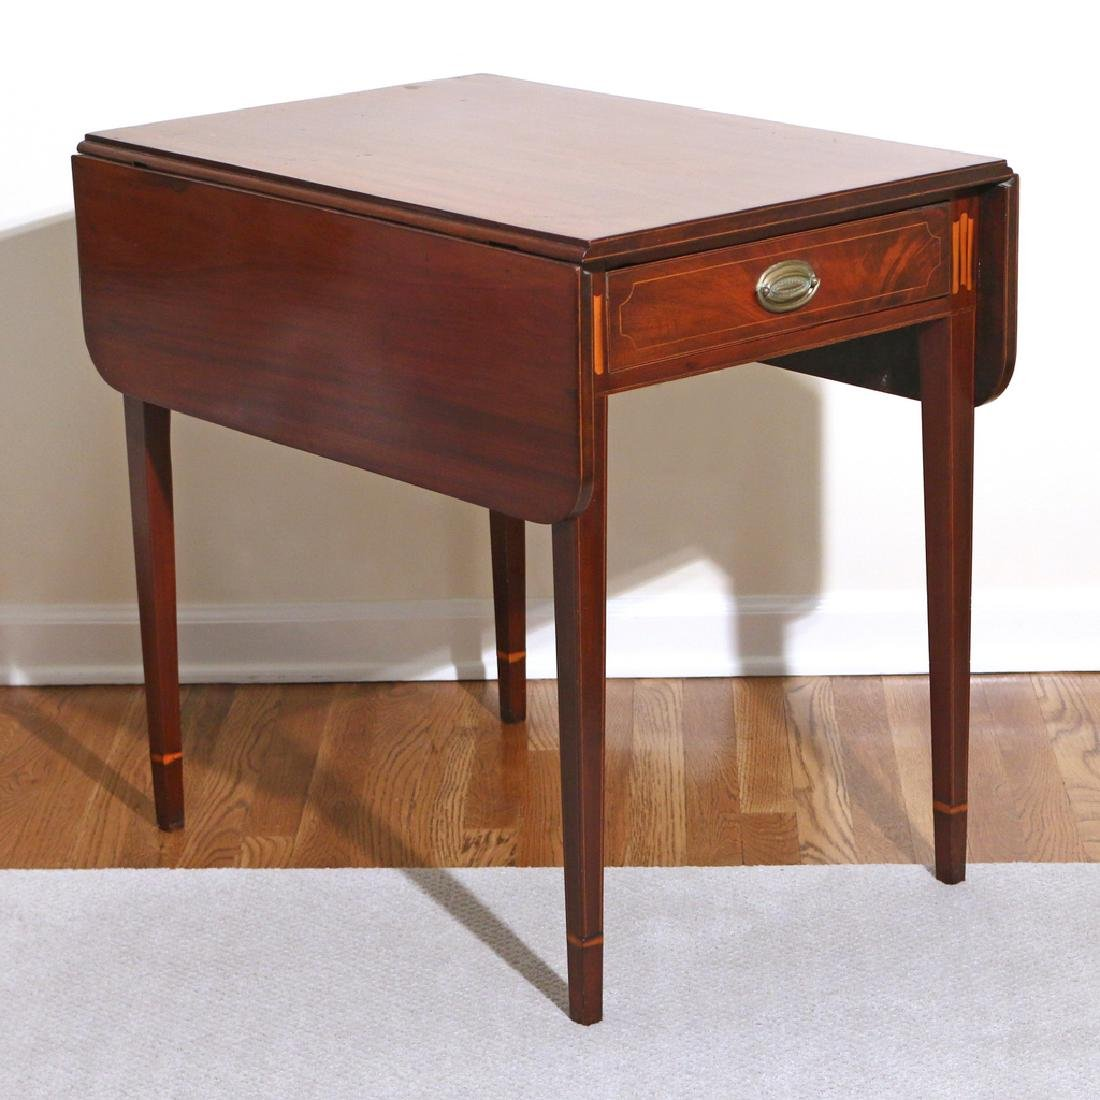 FEDERAL INLAID MAHOGANY PEMBROKE TABLE